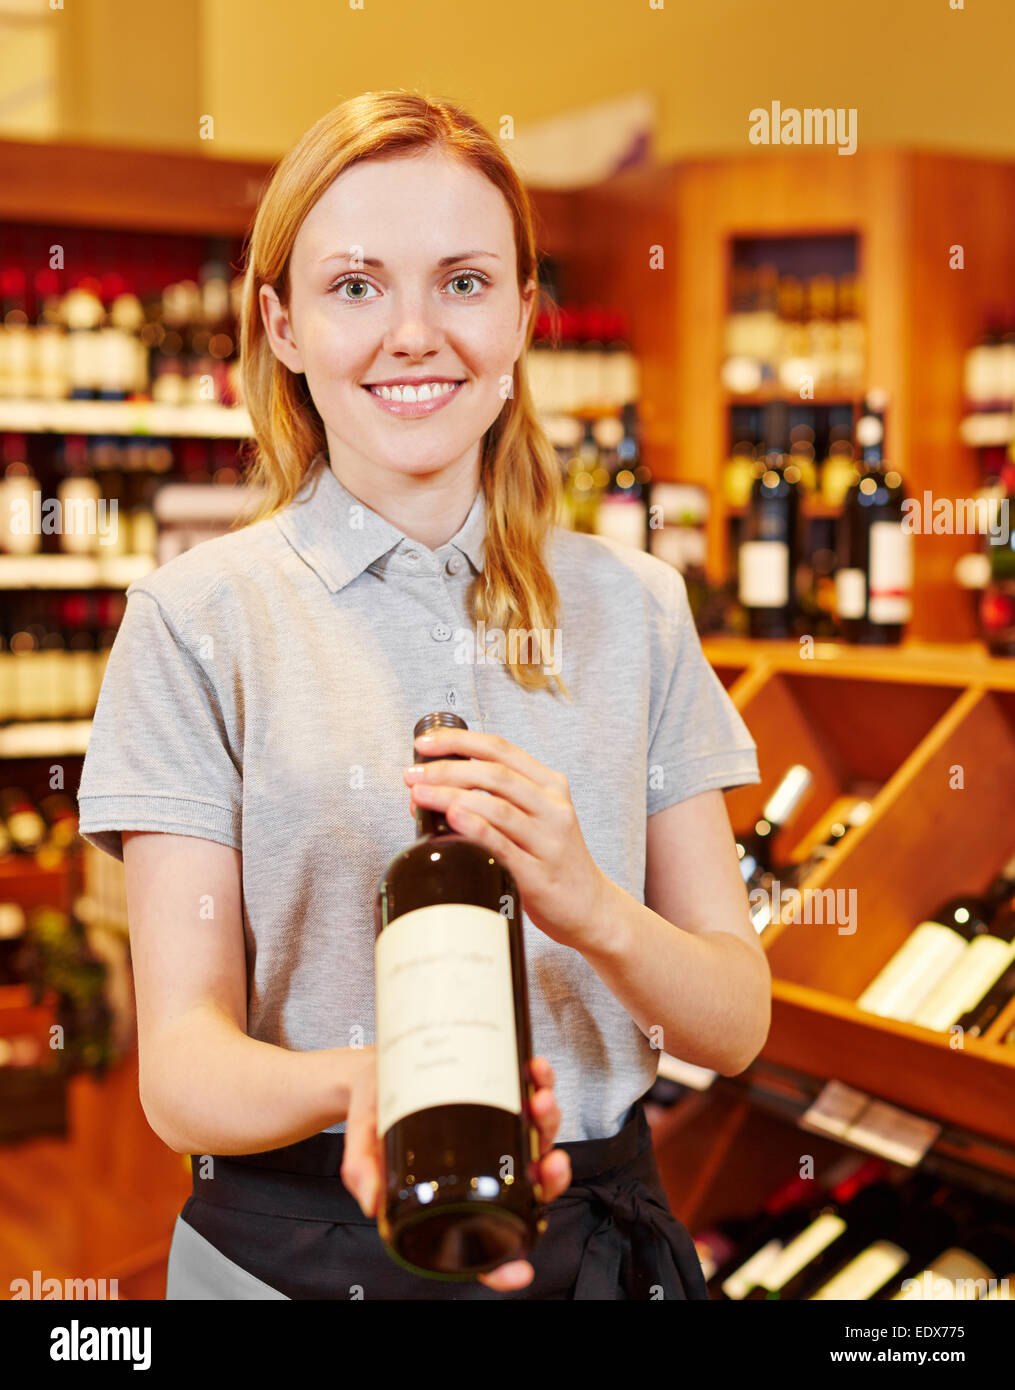 Smiling sommelier in wine shop recommending bottle of red wine - Stock Image